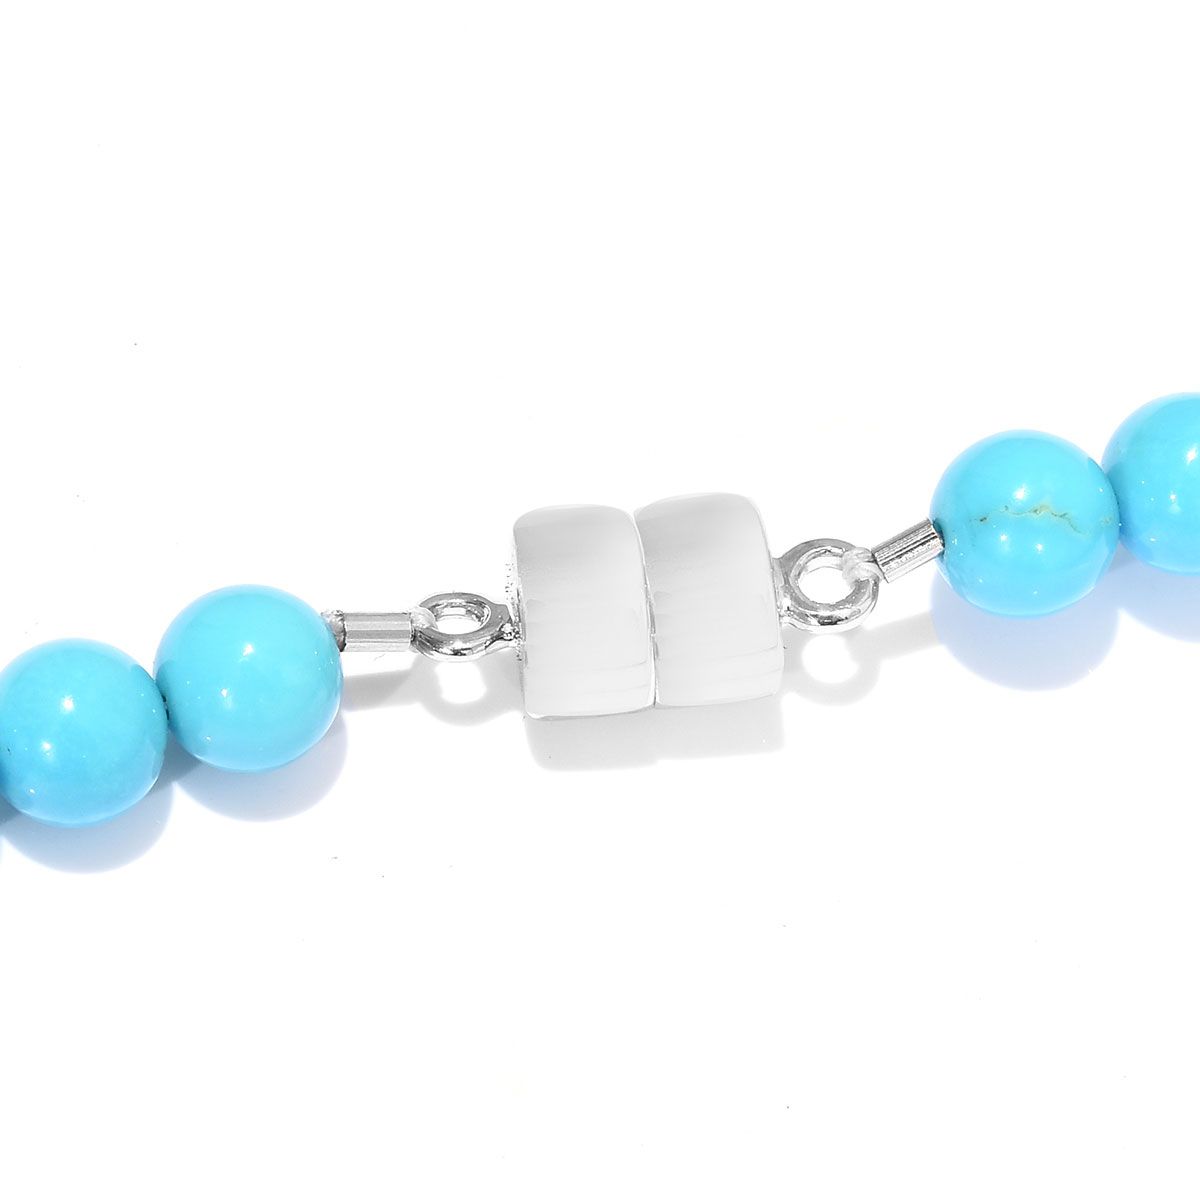 ILIANA Arizona Sleeping Beauty Turquoise Beaded Necklace (18 in) in 18K White Gold 150.00 ctw